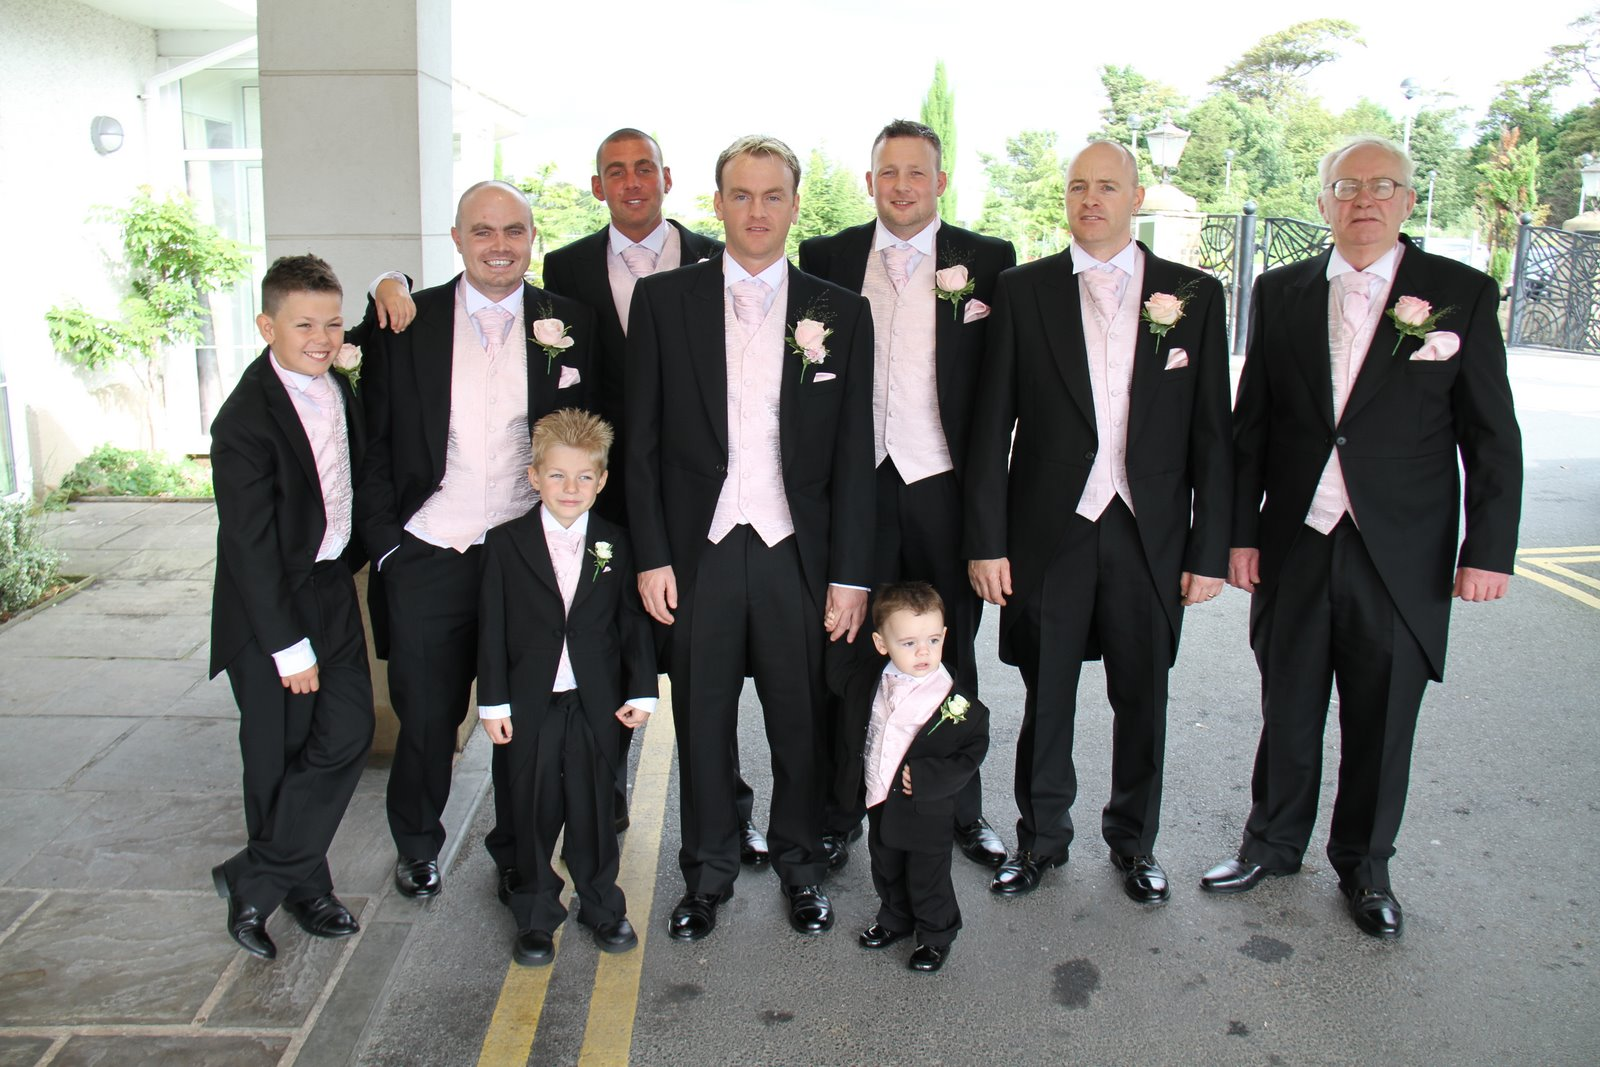 grooms men wedding pictures